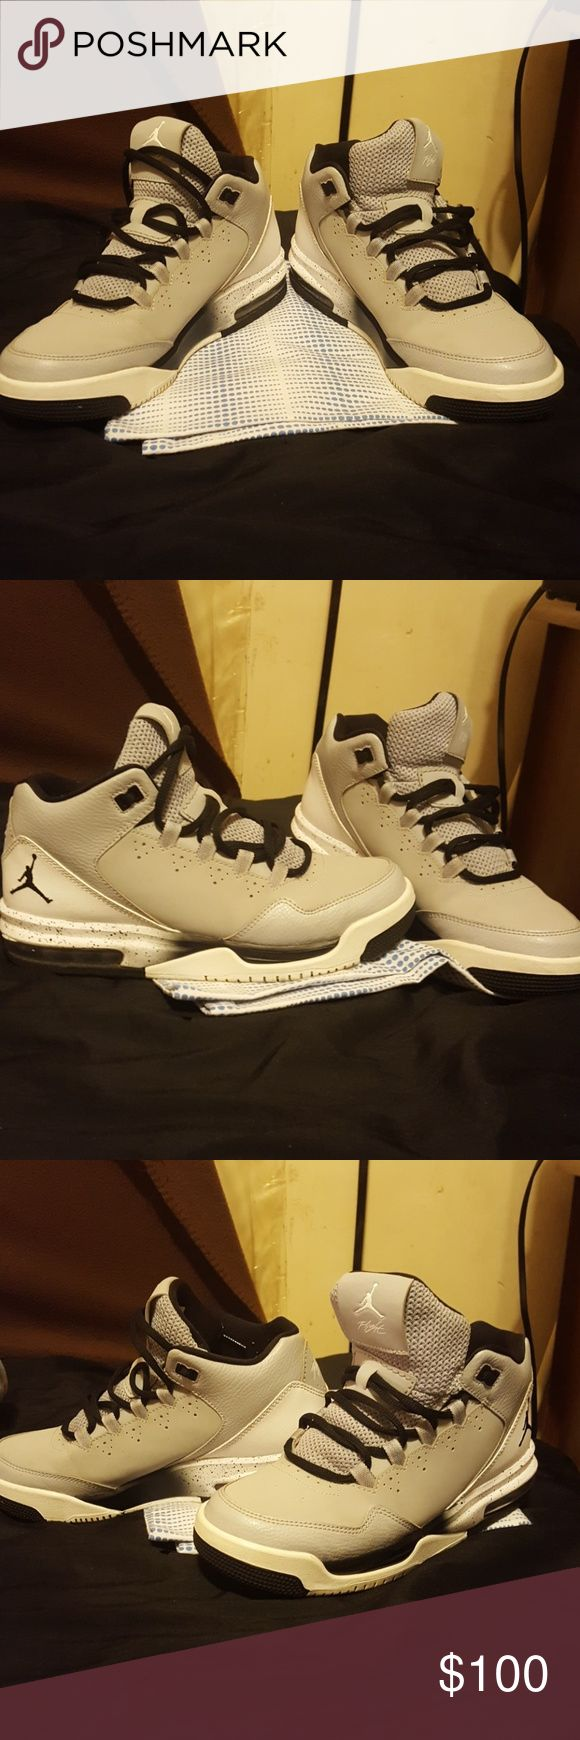 Jordan Flight Cookies N Cream Grey, white, and black cookies and cream Jordan Flights, 6Y Jordan Shoes Athletic Shoes